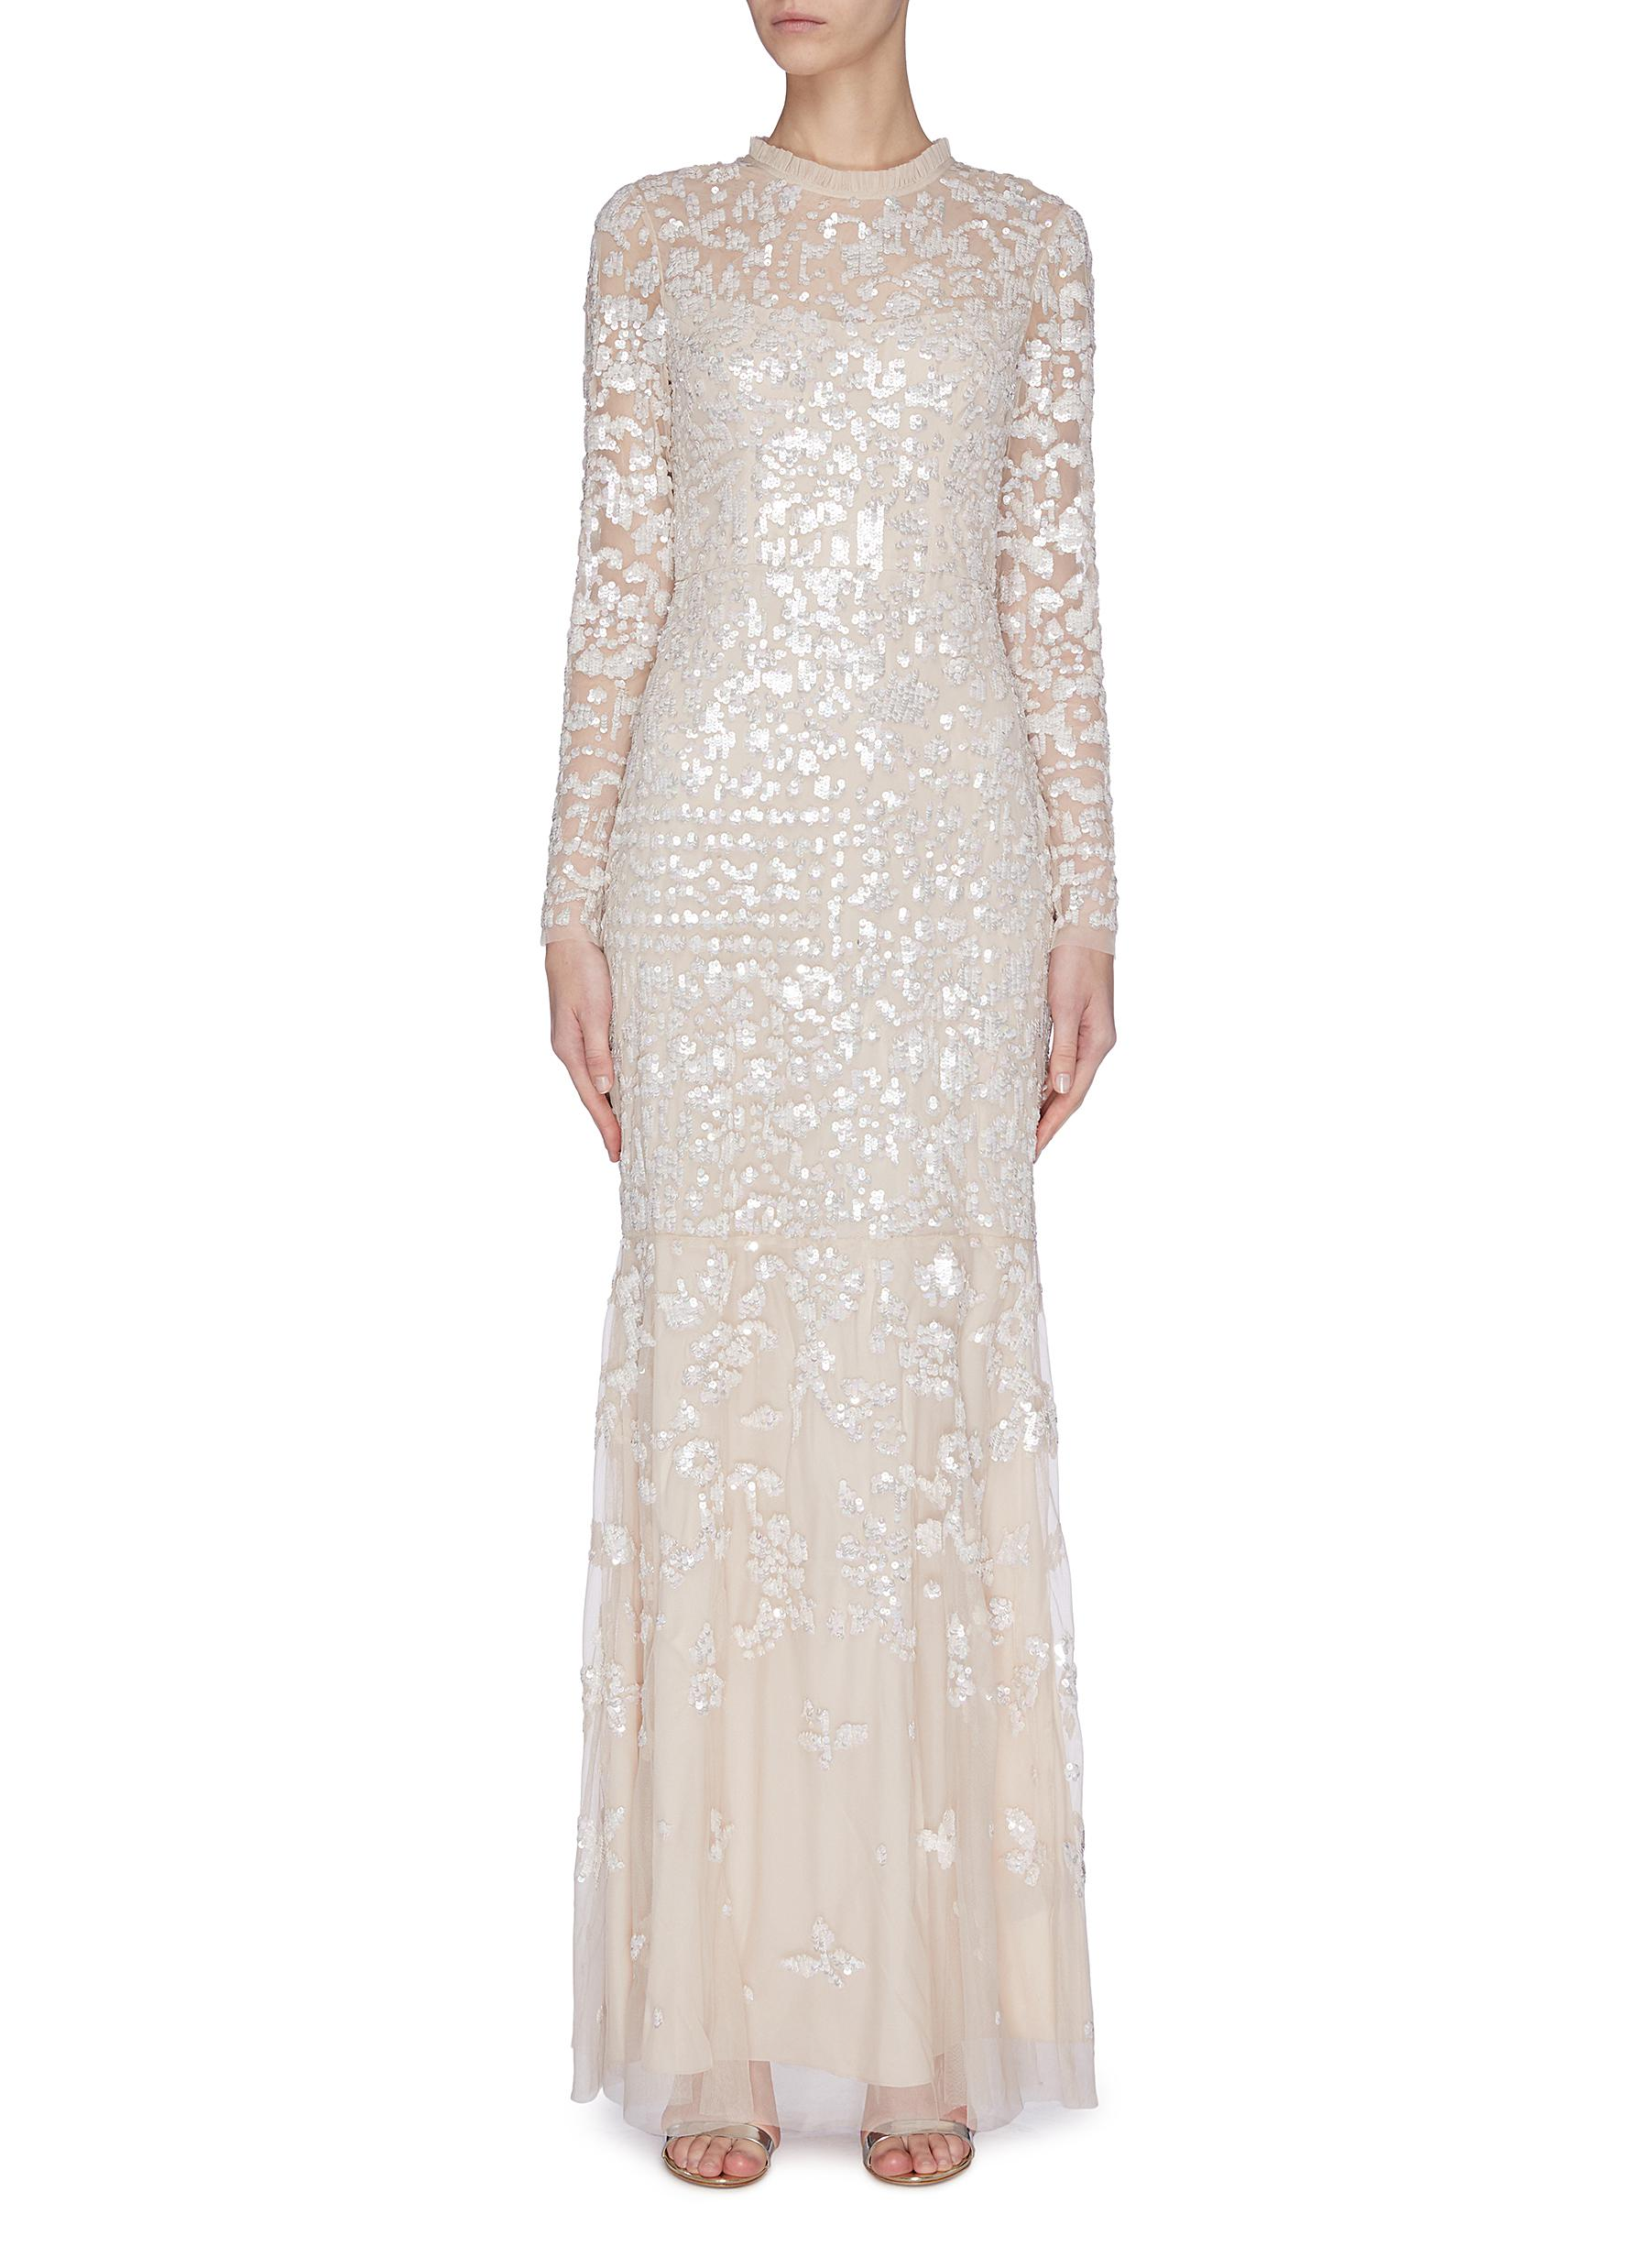 Buy Needle & Thread Dresses 'Tempest' sequin embroidered gown